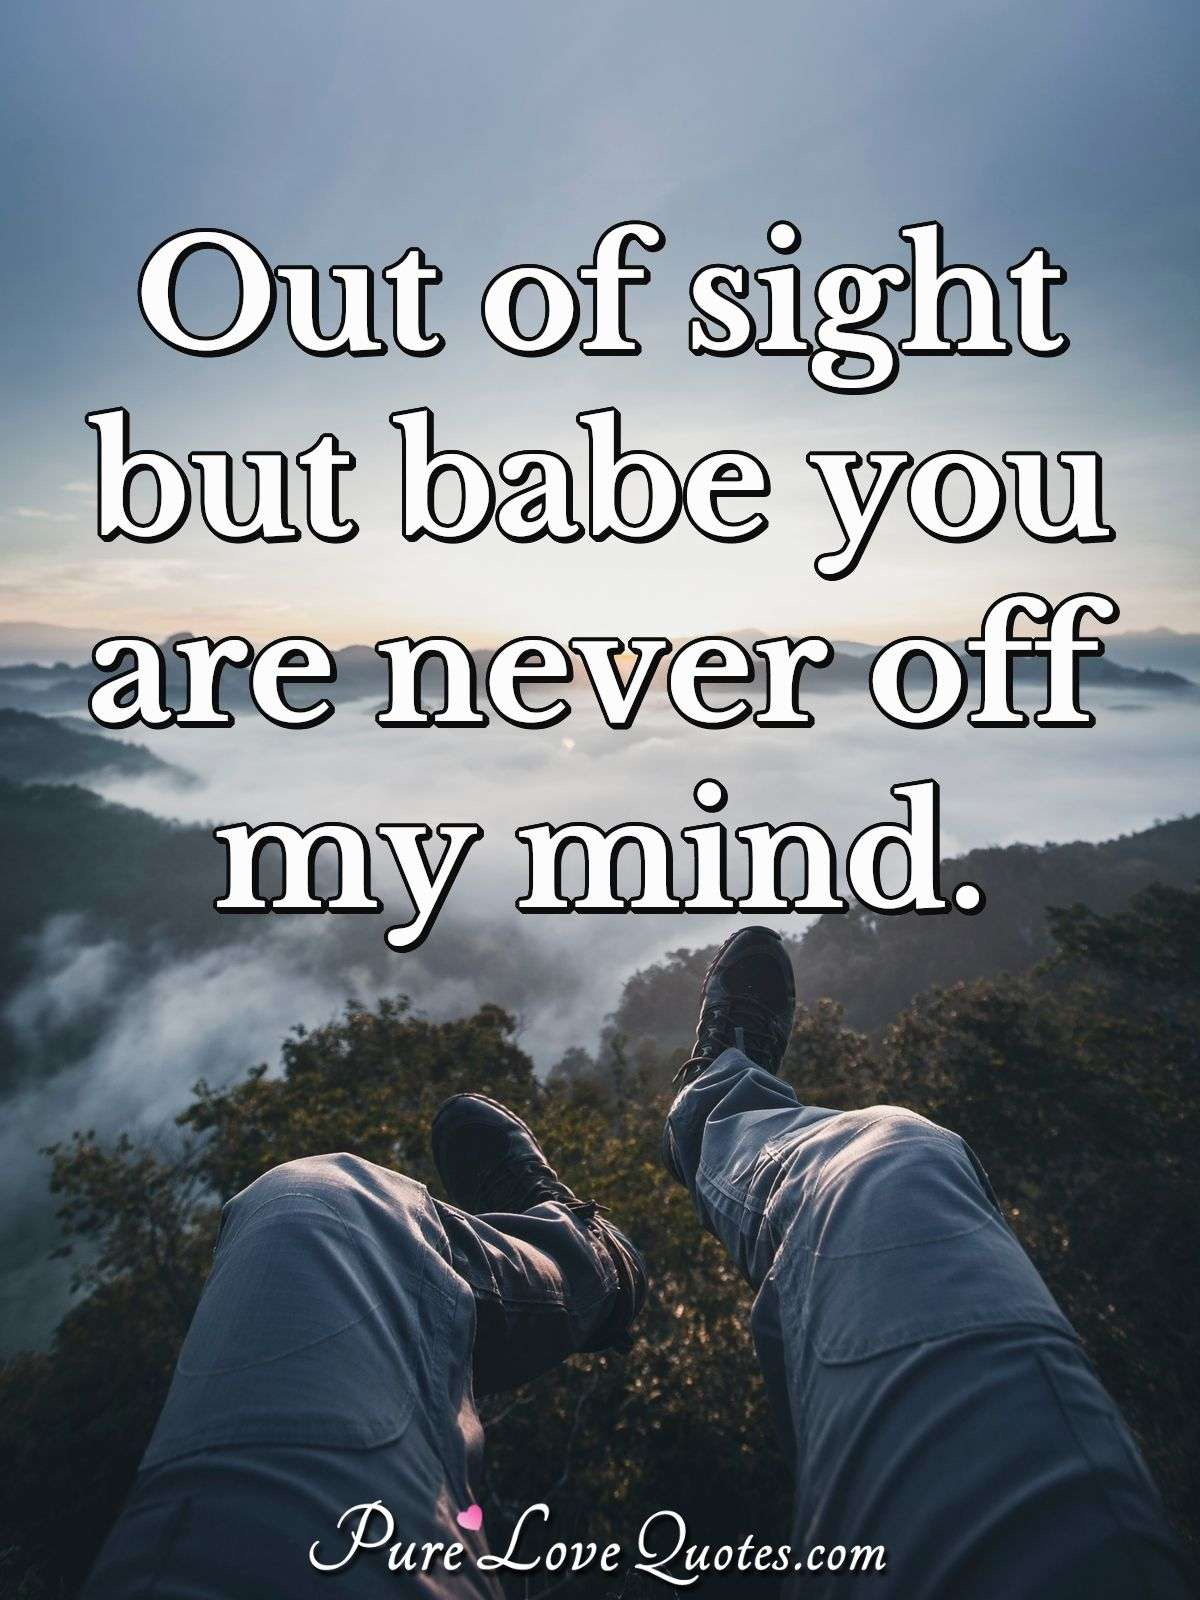 Out of sight but babe you are never off my mind. - Anonymous